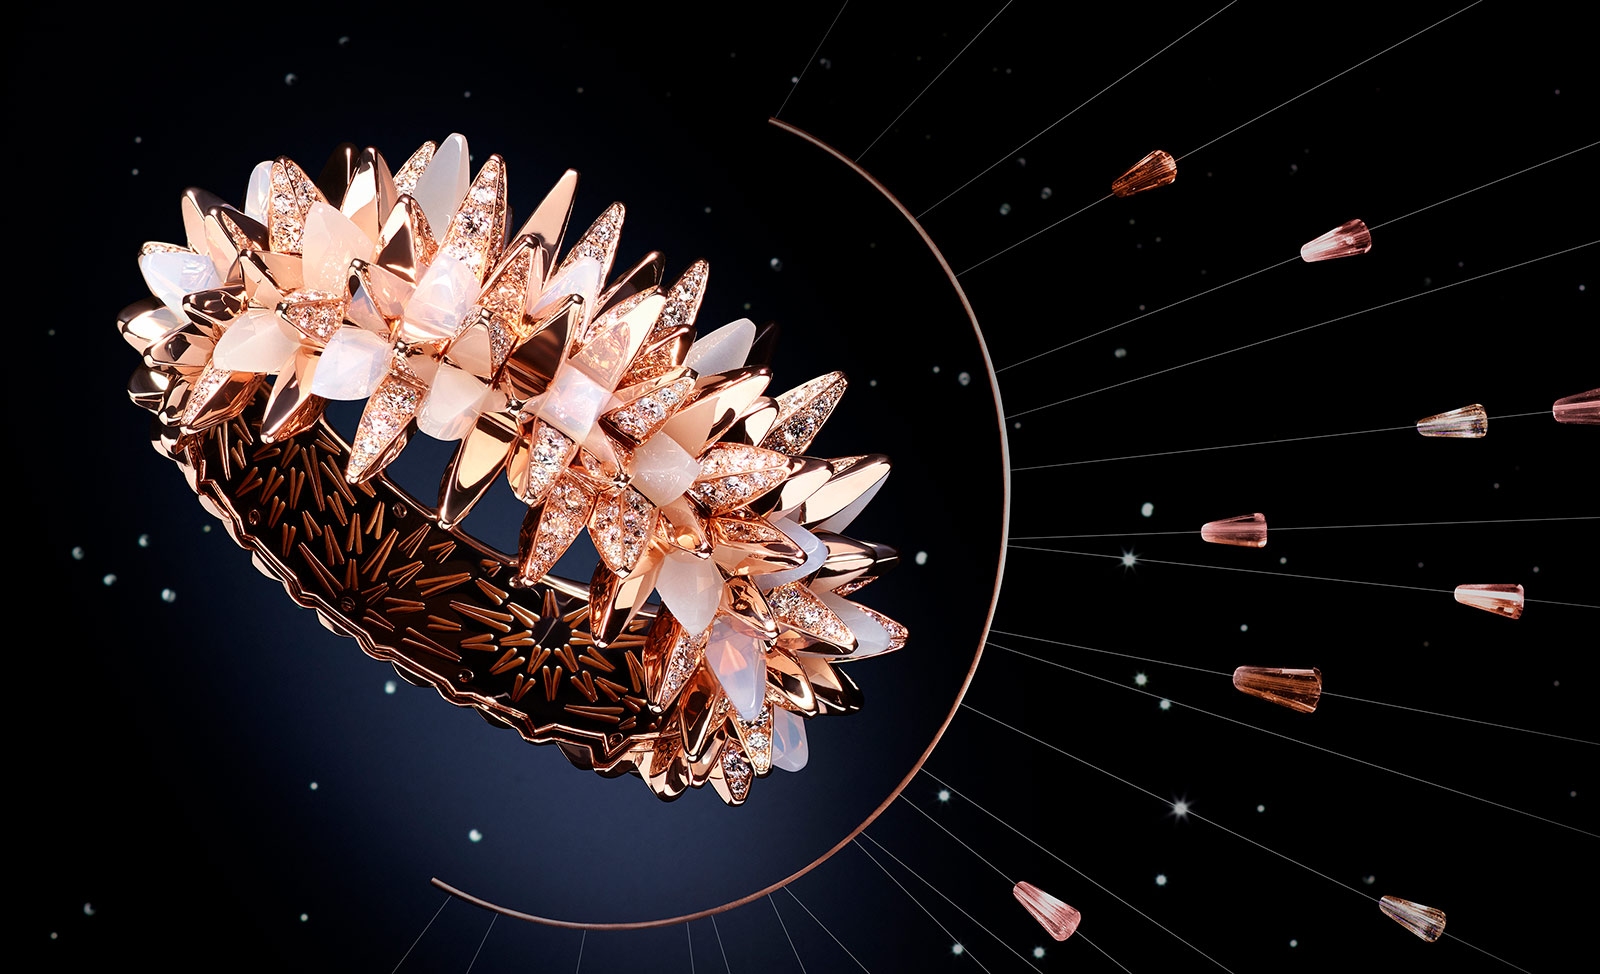 Cartier 'Fractal Meteor' bracelet from 'Les Galaxies de Cartier' collection with diamonds, moonstone and milky quartz in 18k rose gold